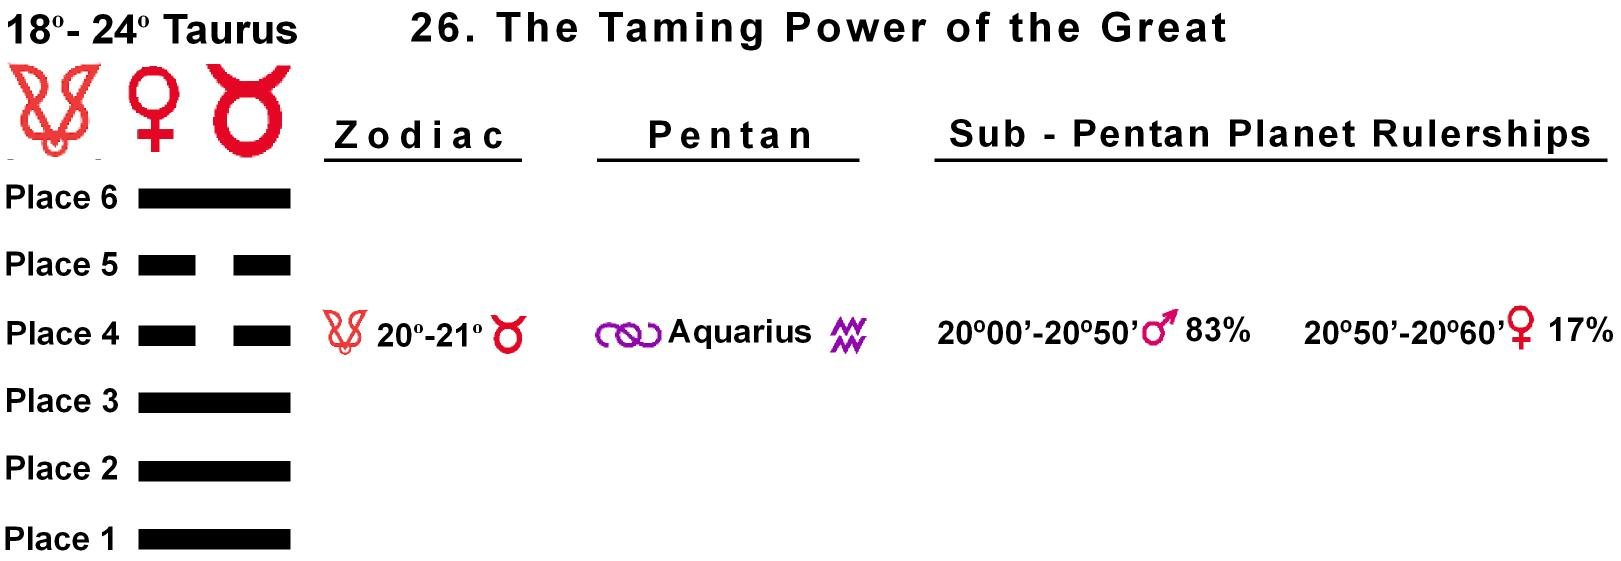 Pent-lines-02TA 20-21 Hx-26 Taming Power Of The Great